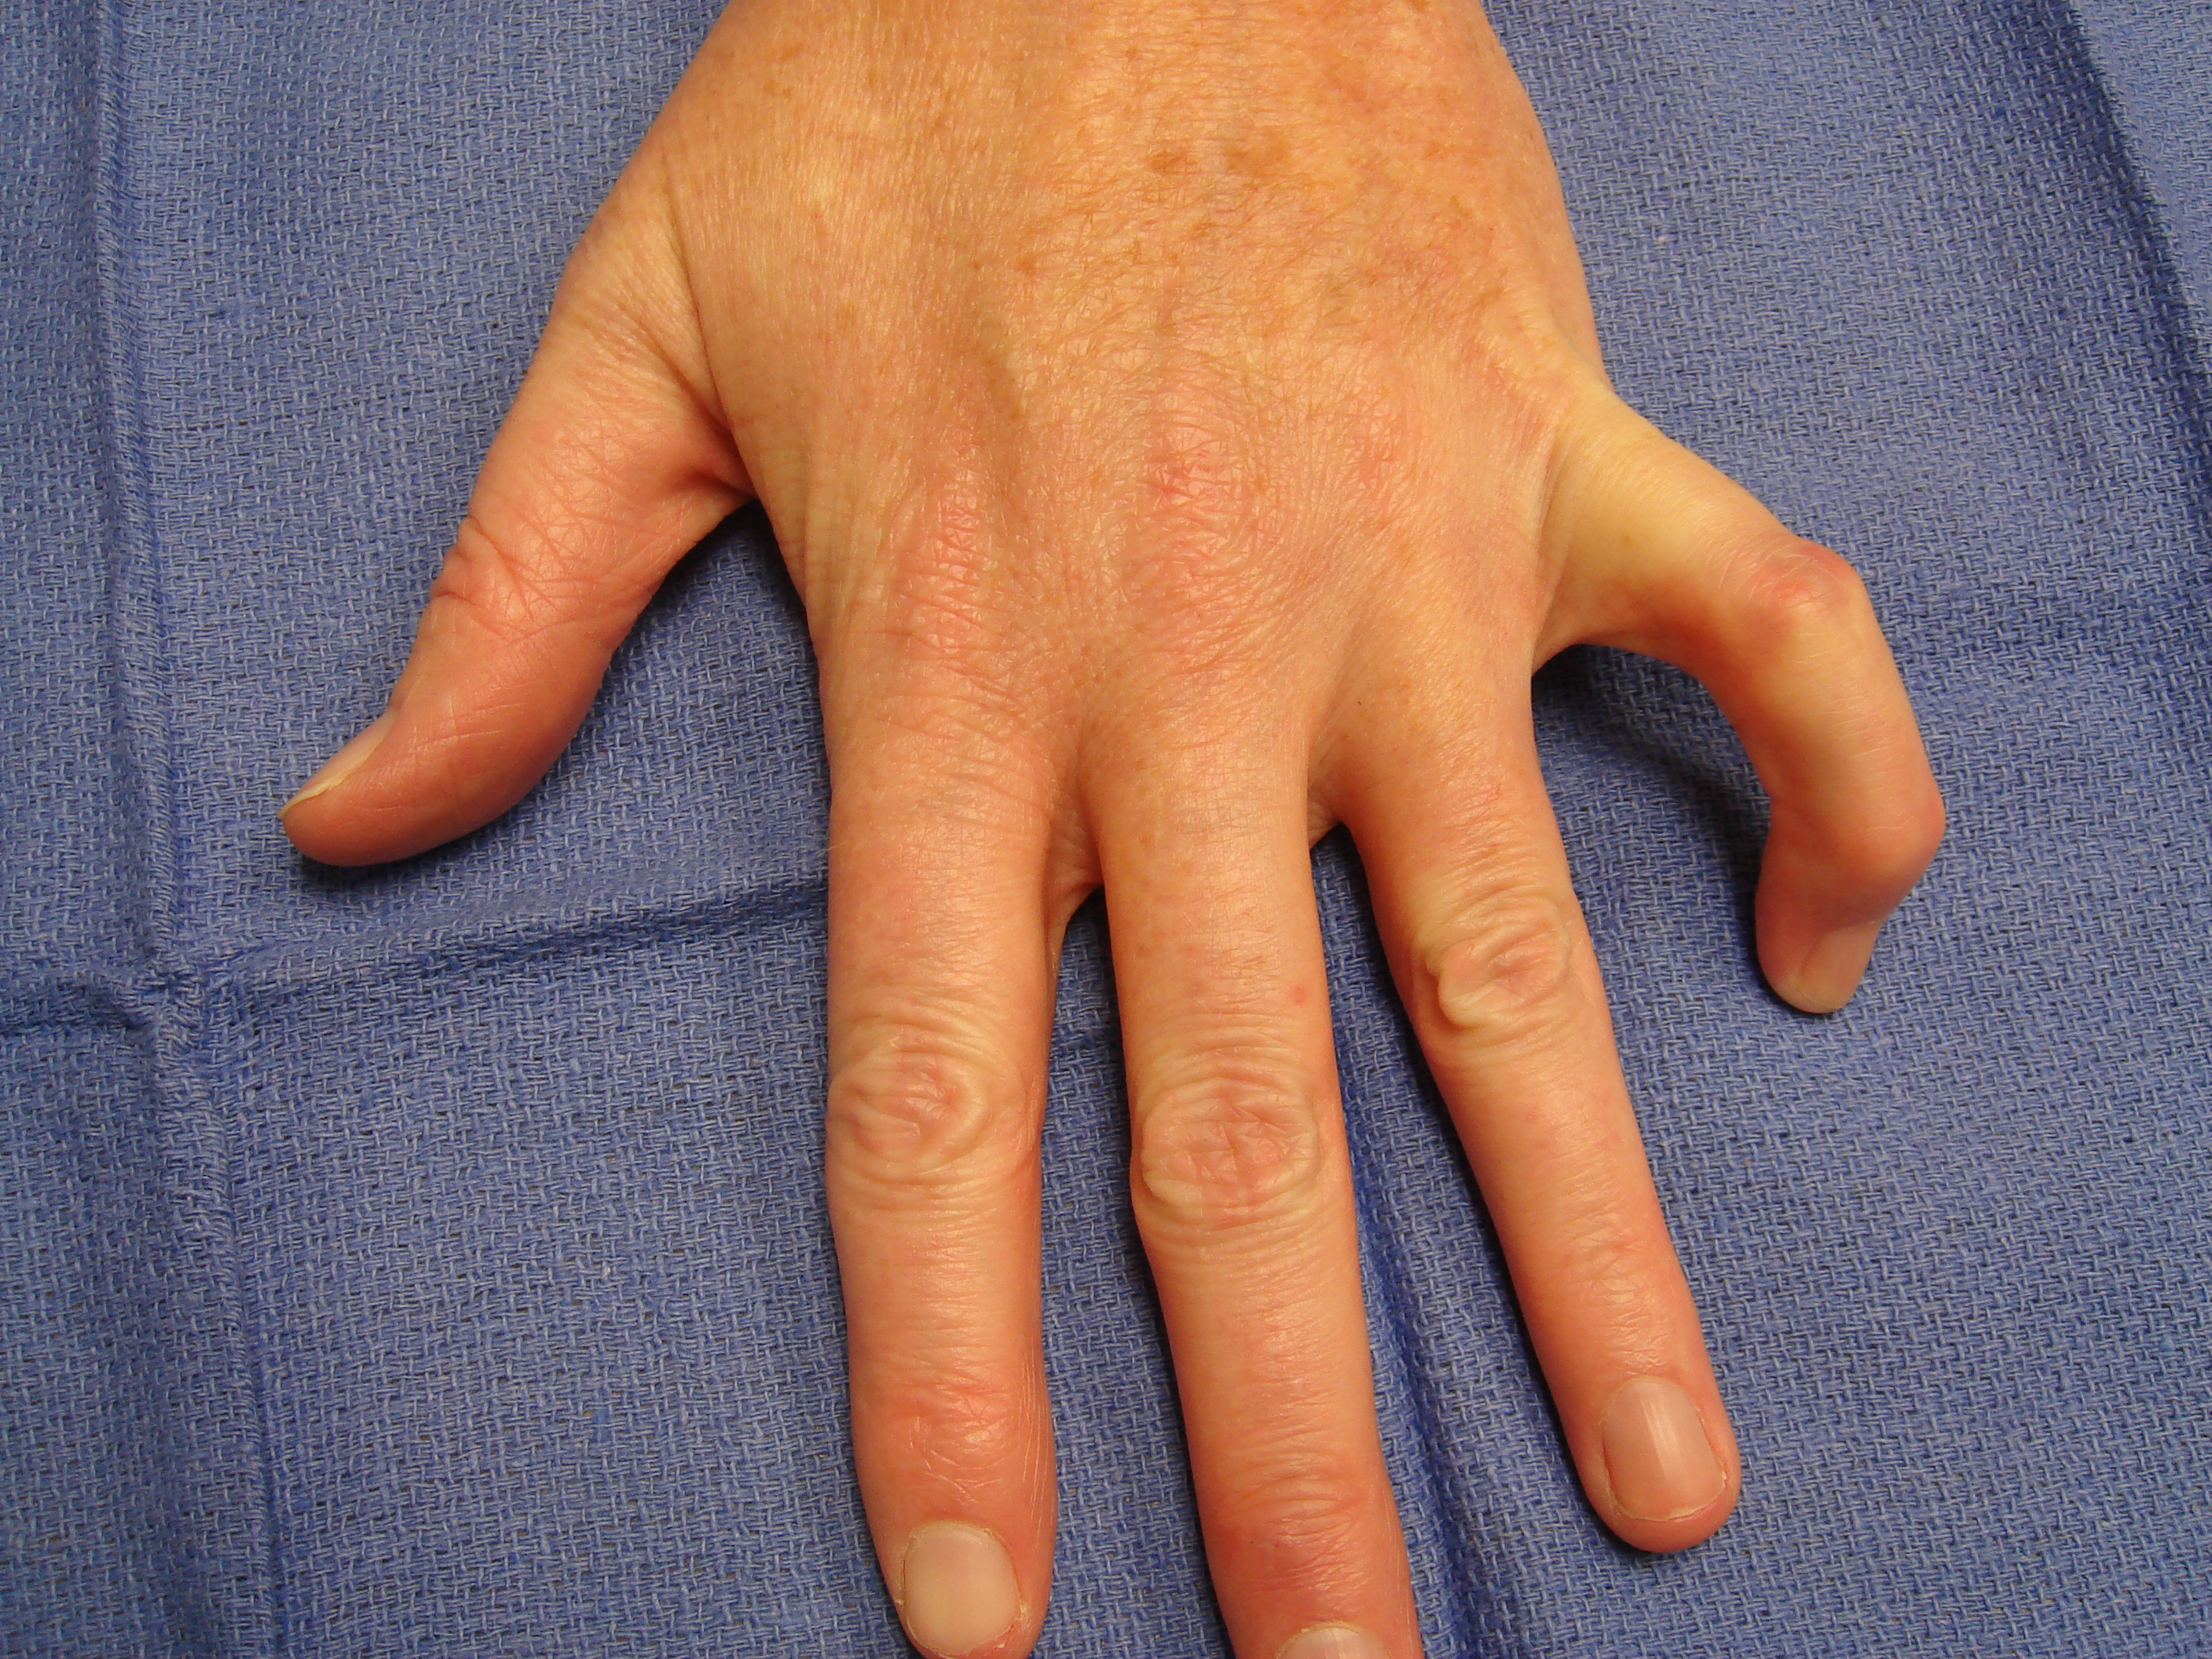 "Figure 8a: These images show a woman in her mid-50s with a significant, little-finger, combined (contiguous cord) PIP and DIP contracture. The MP joint was not affected. The injection and manipulation videos depict custom adaptation of the ""safe technique"" for such an unusual cases."